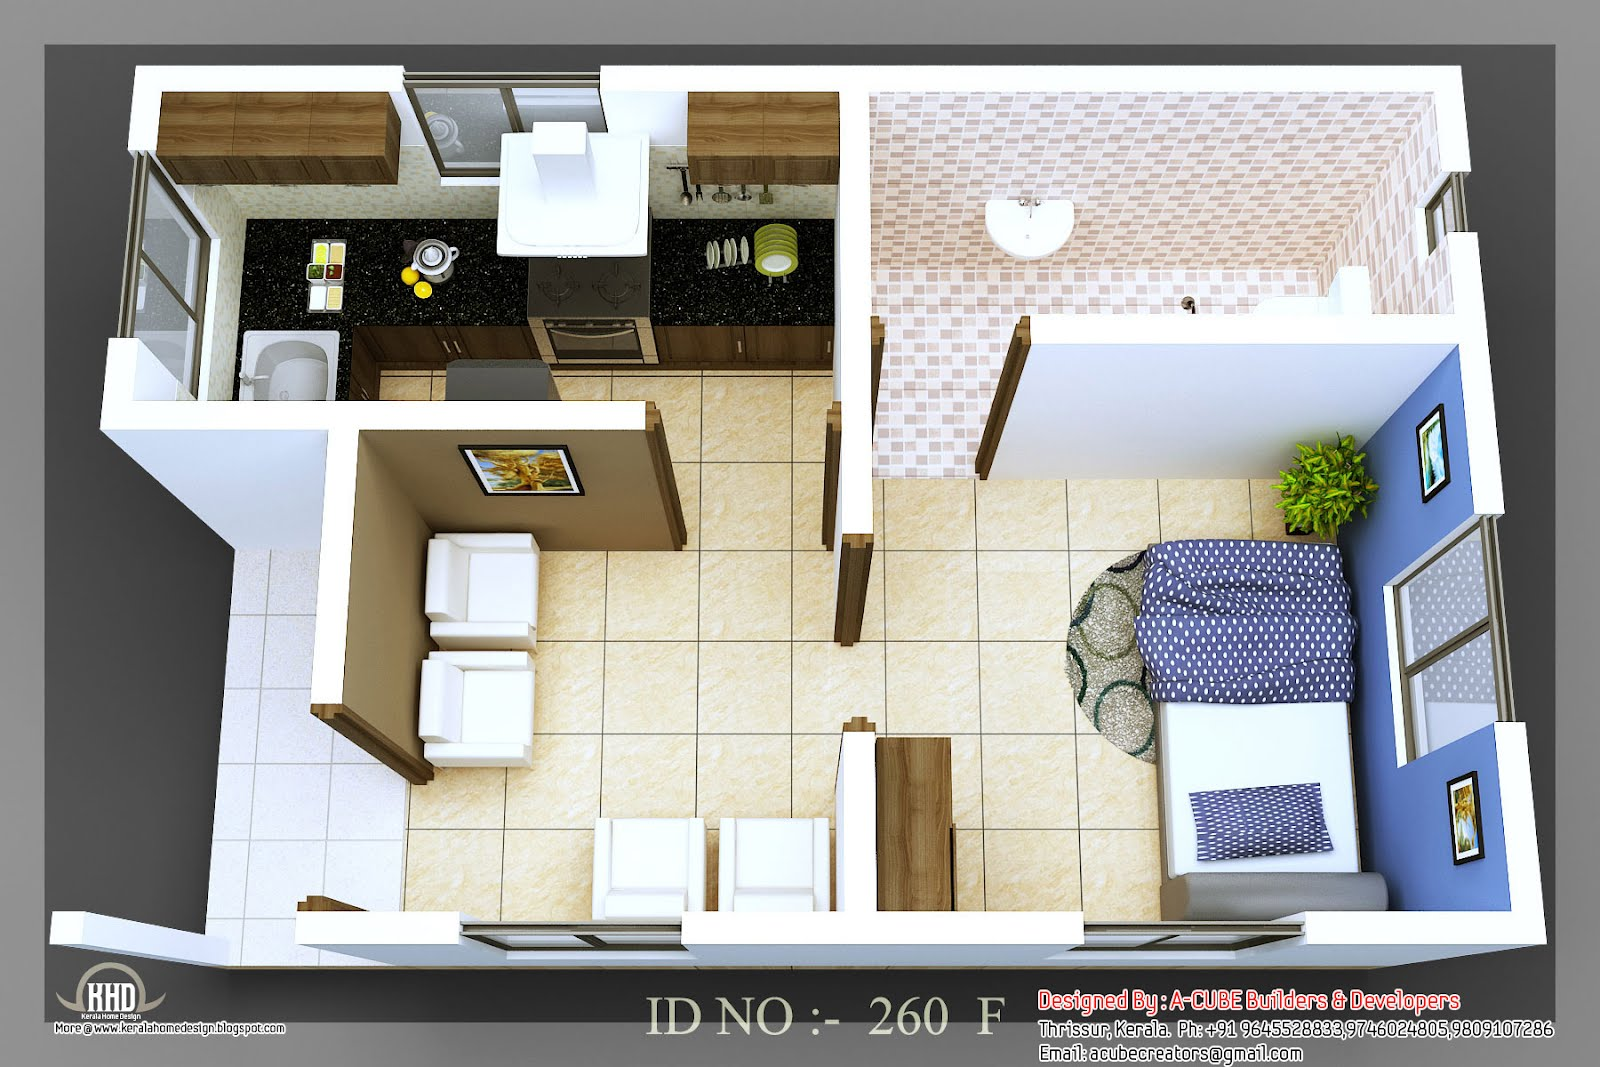 3d isometric views of small house plans home appliance for 4 bedroom 3d house plans